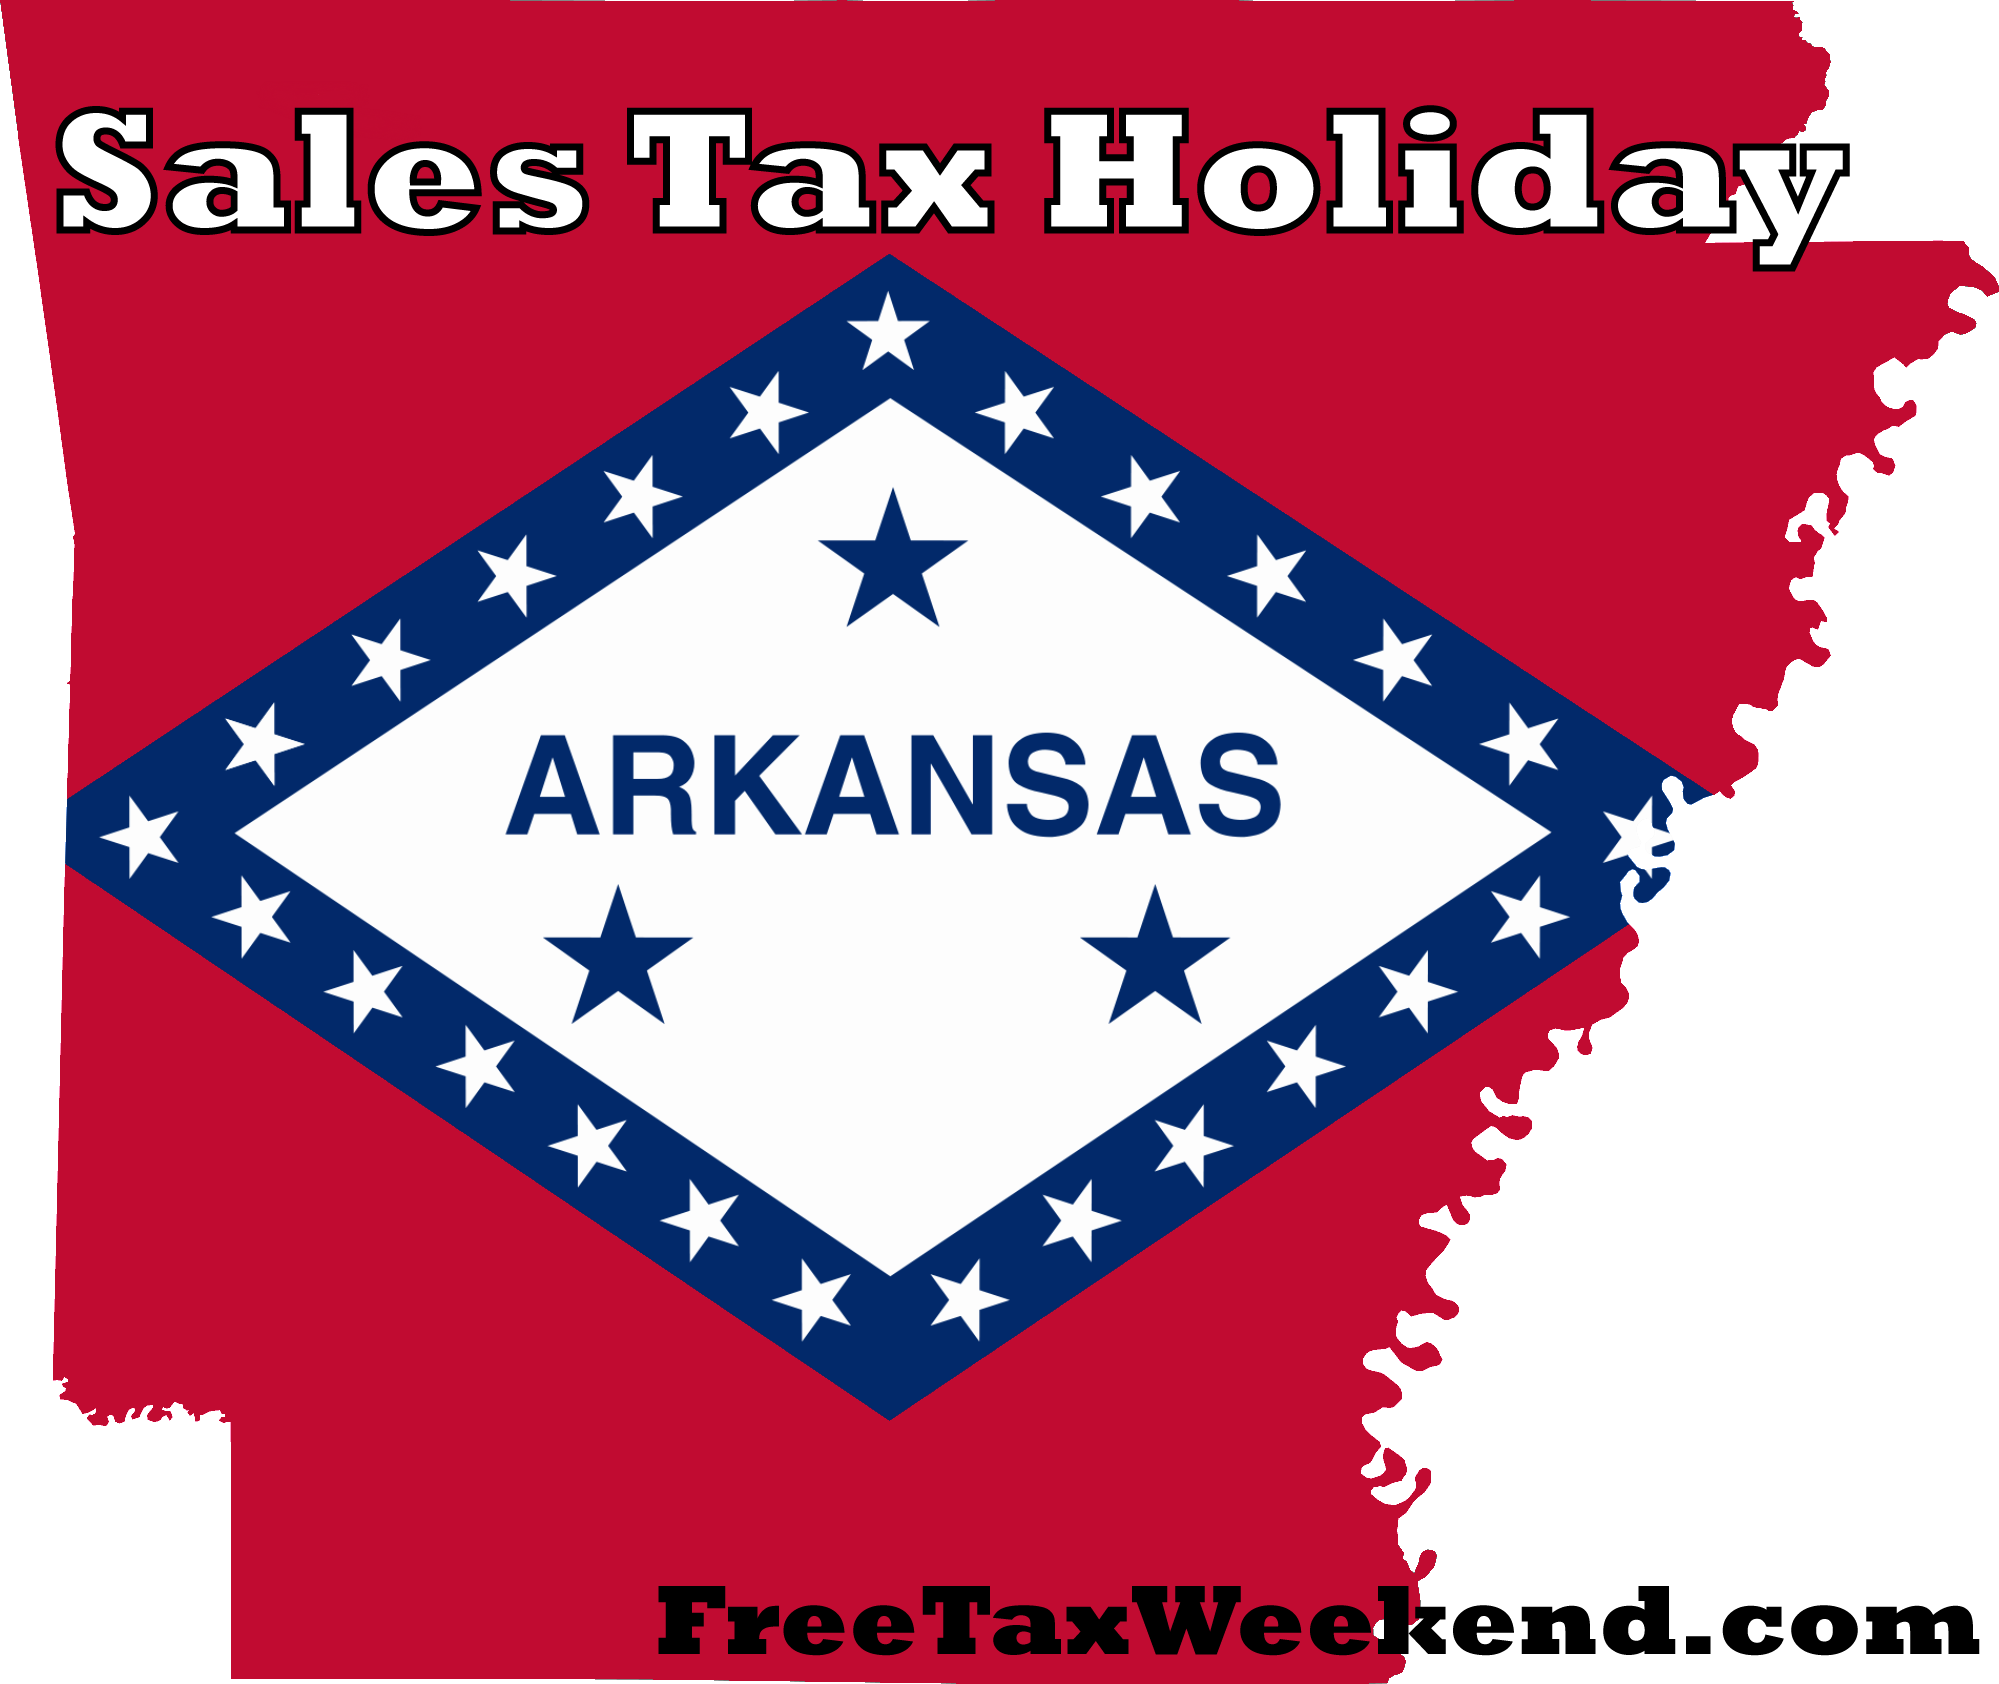 Arkansas Sales Tax Holiday 2018